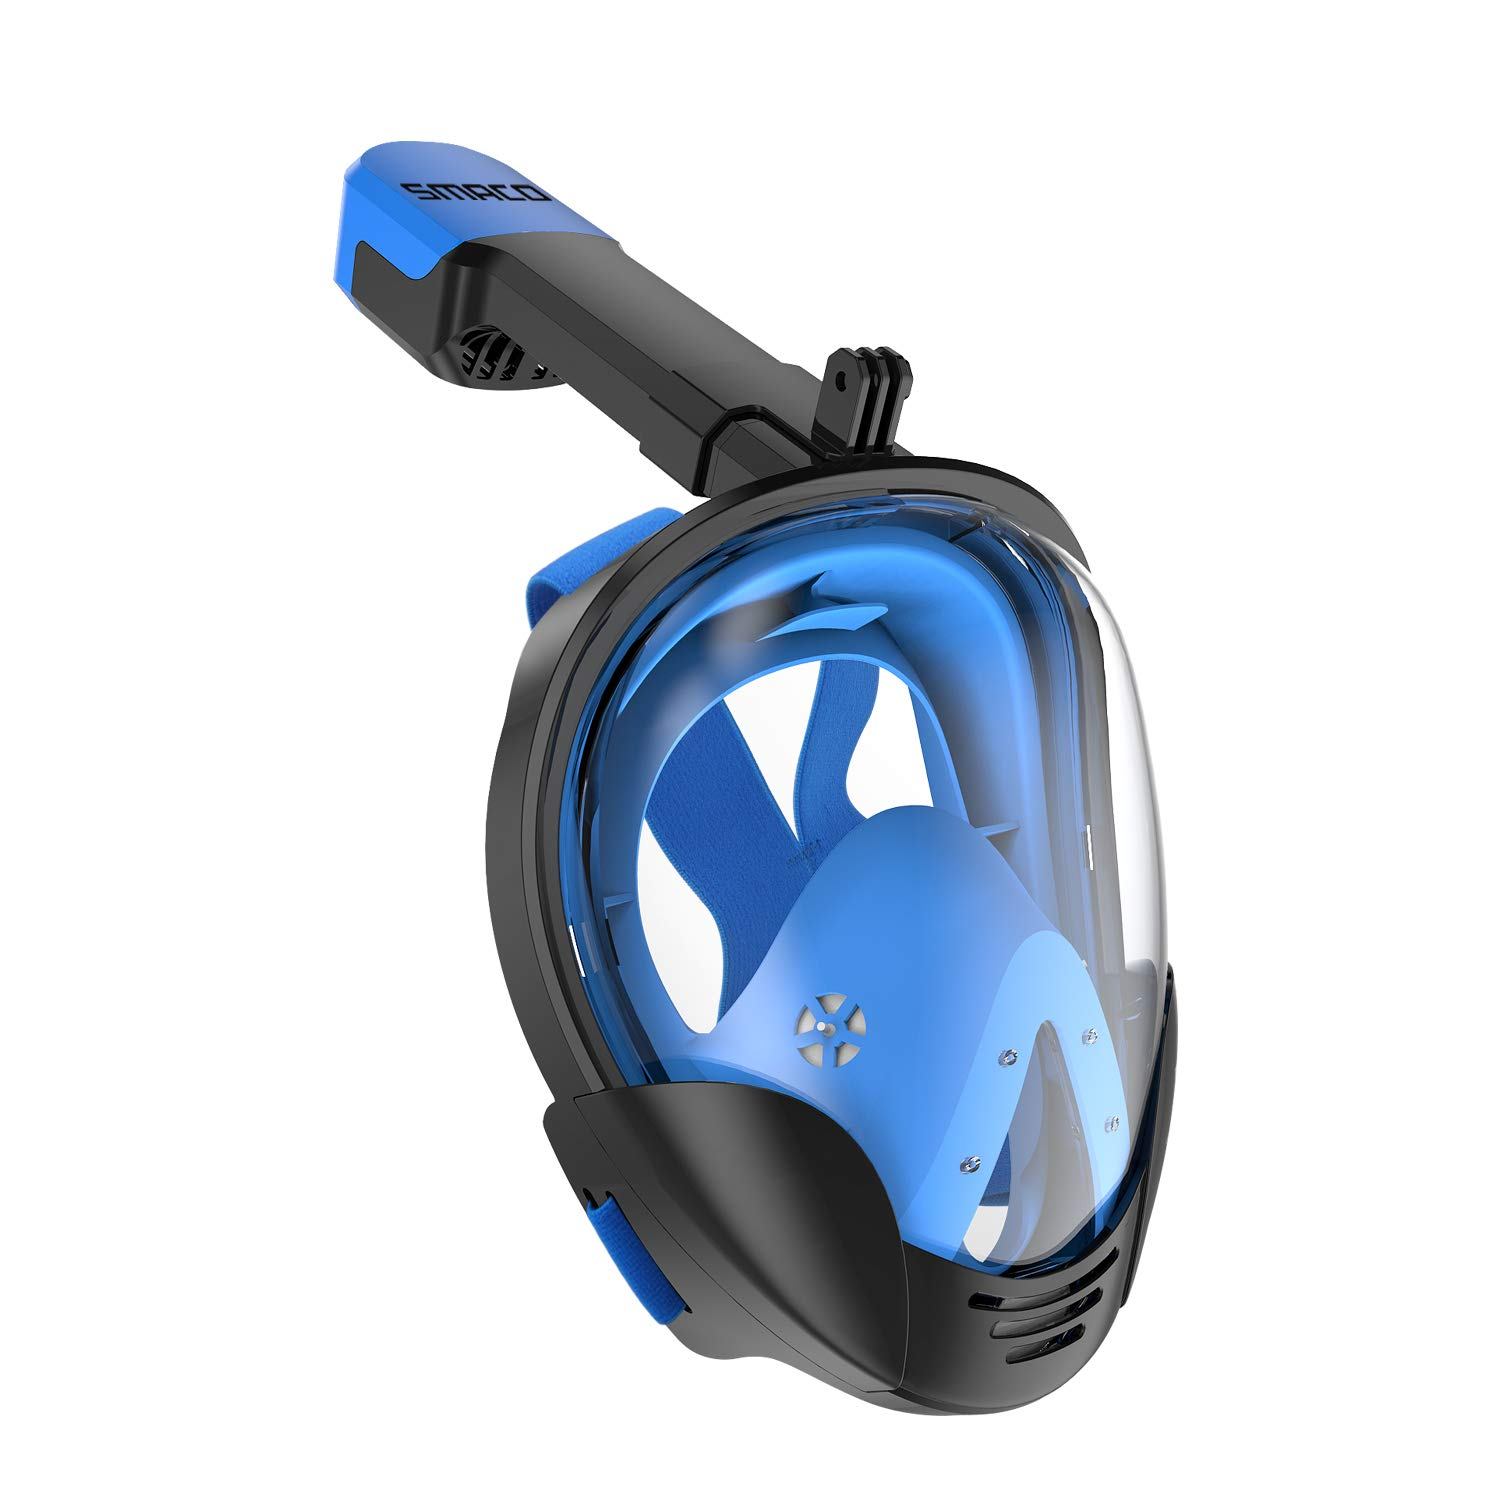 SMACO Full Face Snorkel Mask with UV Protection Anti-Fog Anti-Leak Snorkeling Mask with Detachable Camera Mount 180° Panoramic View Swimming Mask for Adults and Youth (Black/Blue, L/XL) by SMACO